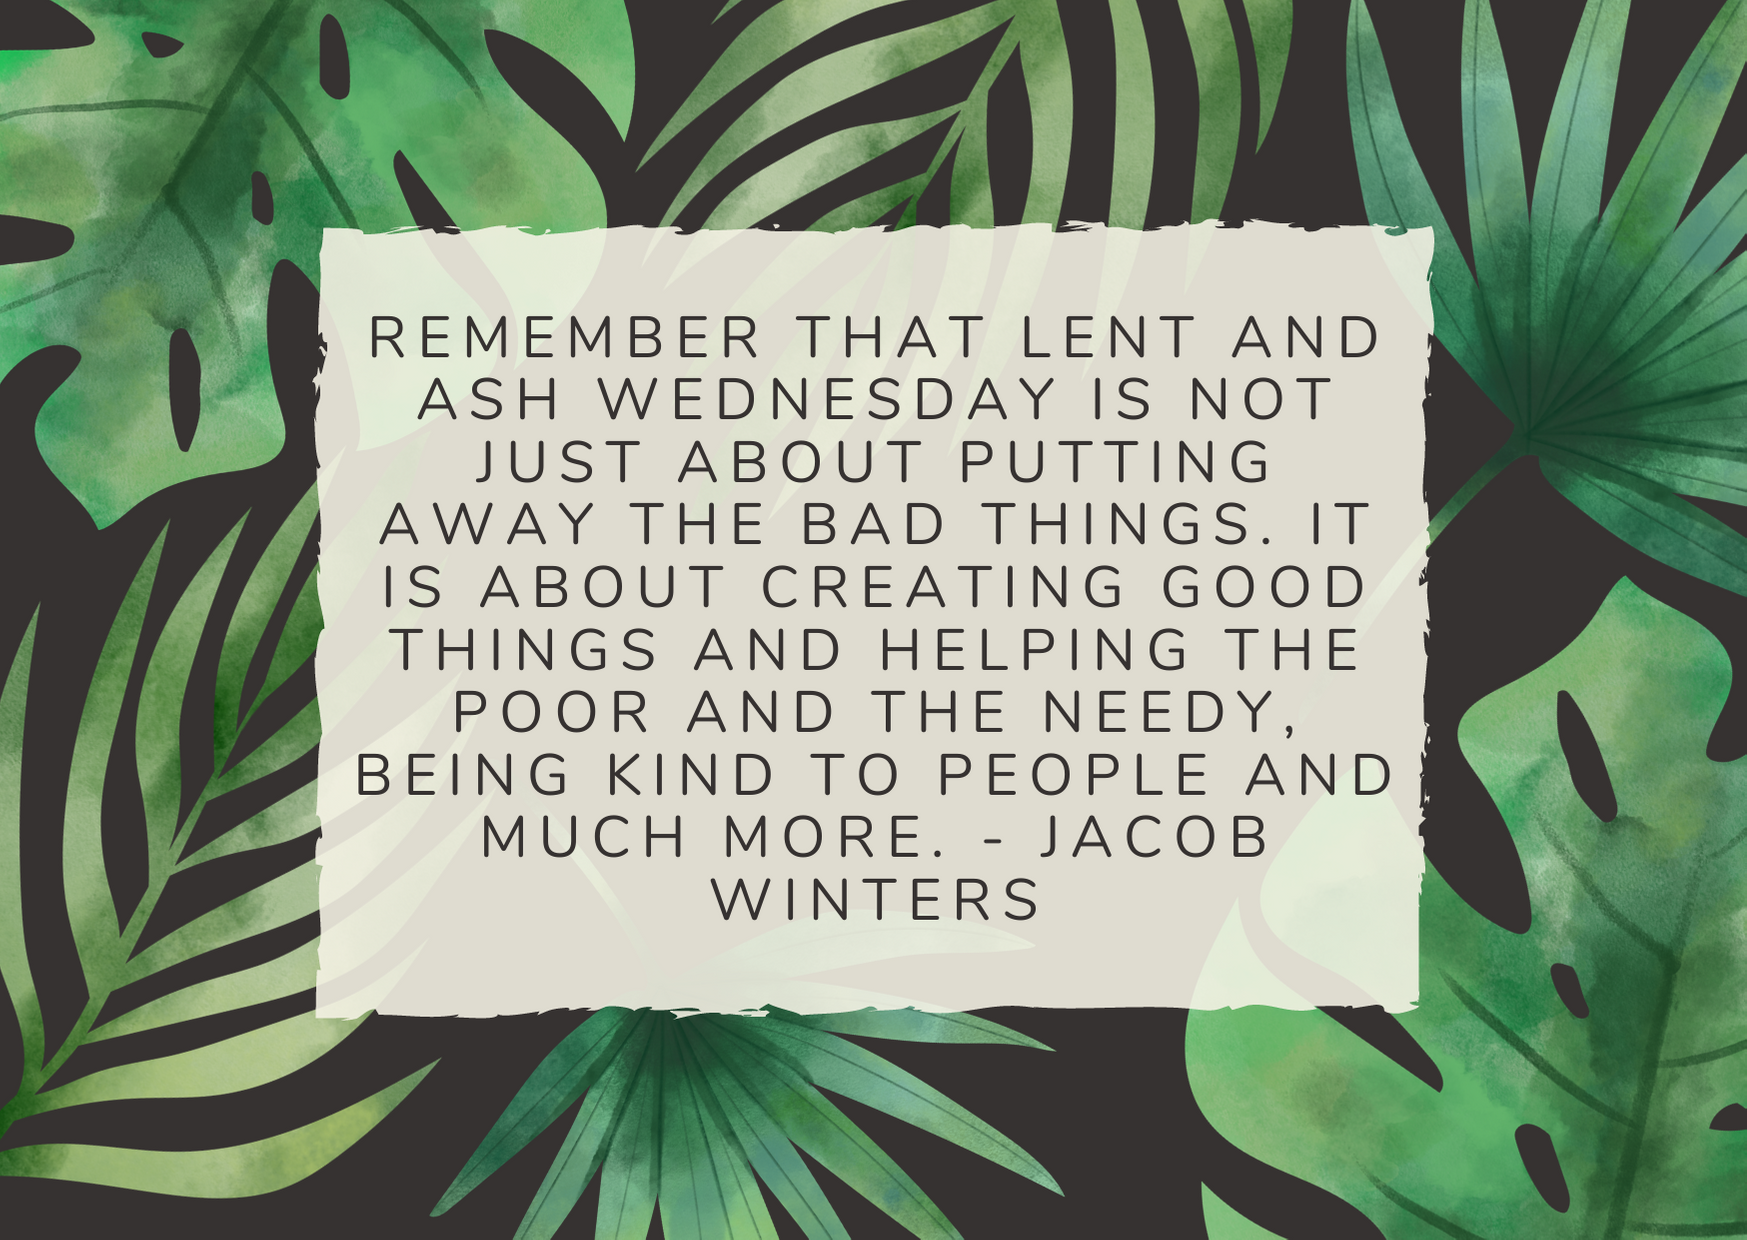 Remember that lent and ash Wednesday is not just about putting away the bad things. It is about creating good things and helping the poor and the needy, being kind to people and much more. - Jacob Winters